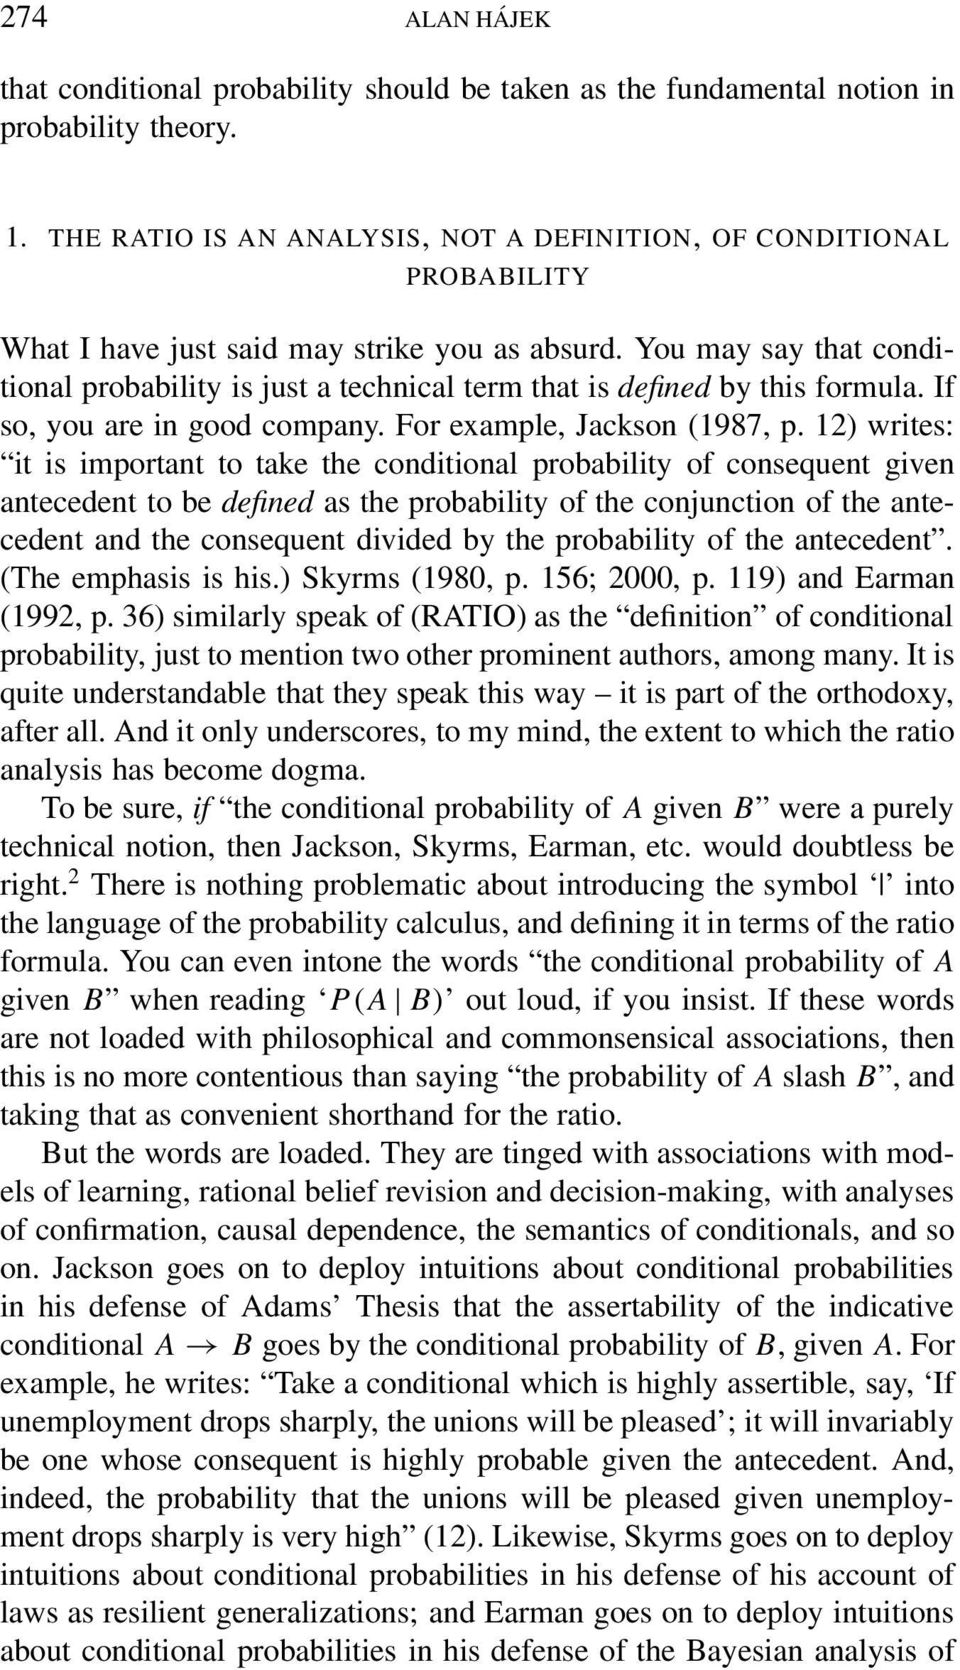 You may say that conditional probability is just a technical term that is defined by this formula. If so, you are in good company. For example, Jackson (1987, p.